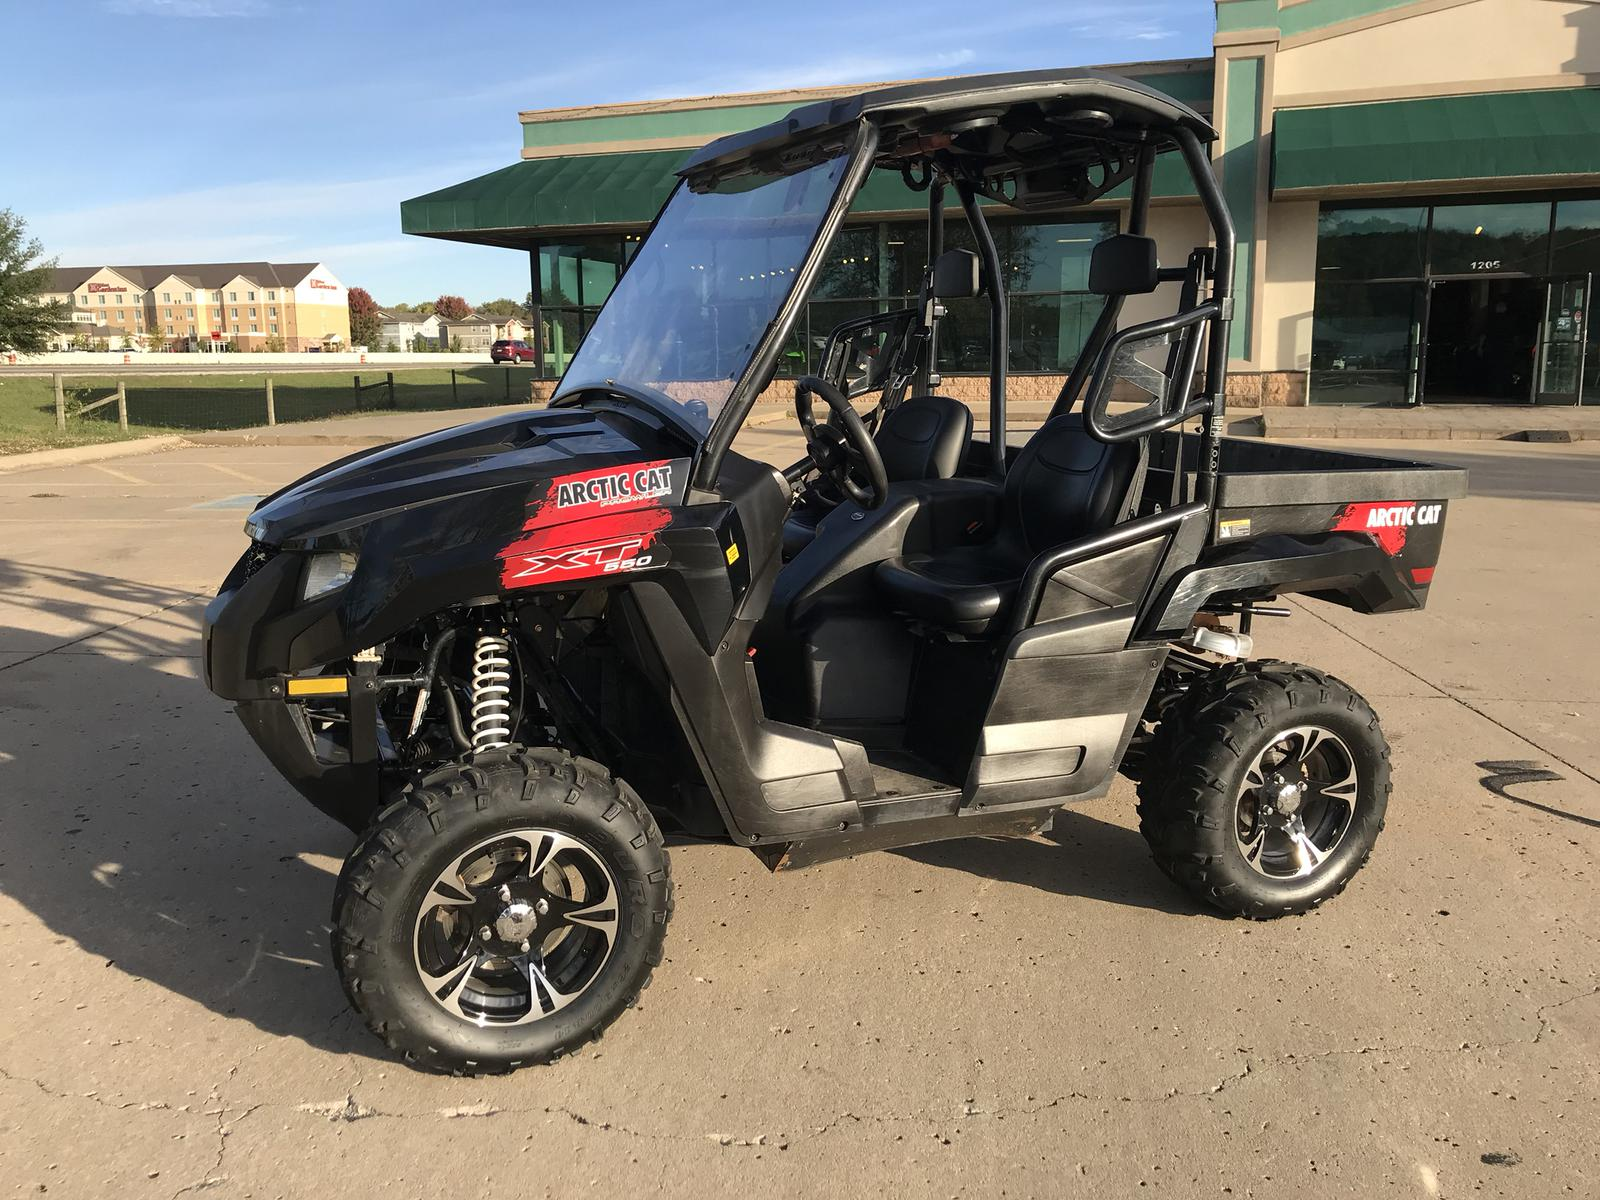 2015 Arctic Cat Prowler 550 XT for sale in Fayetteville AR